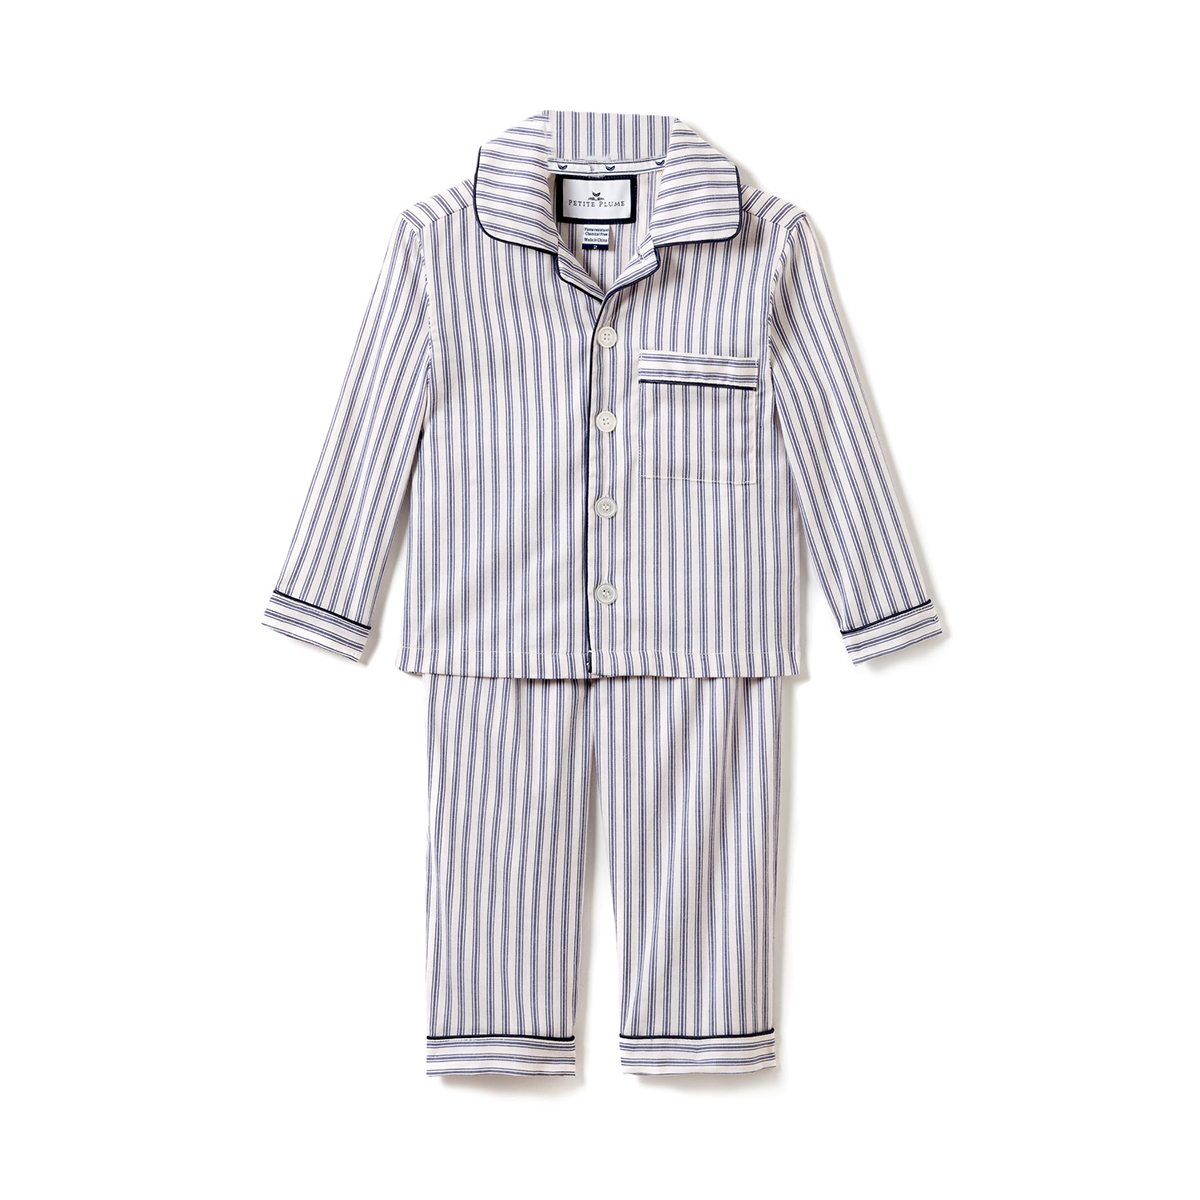 Petite Plume Navy French Ticking PJ Set